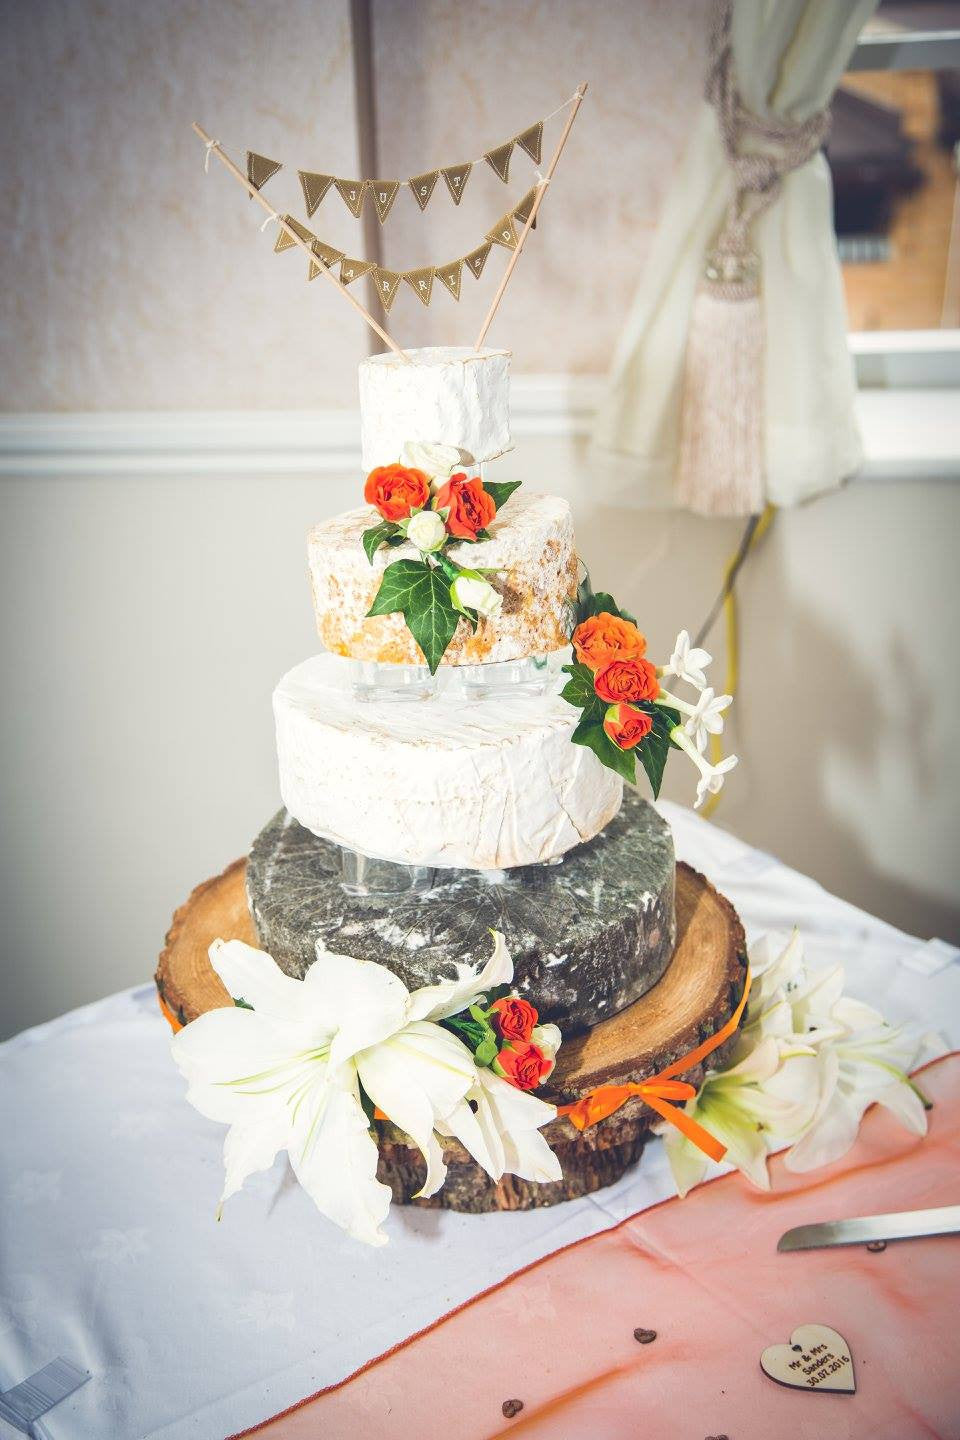 Wedding Cheese Cake with floral decoration.